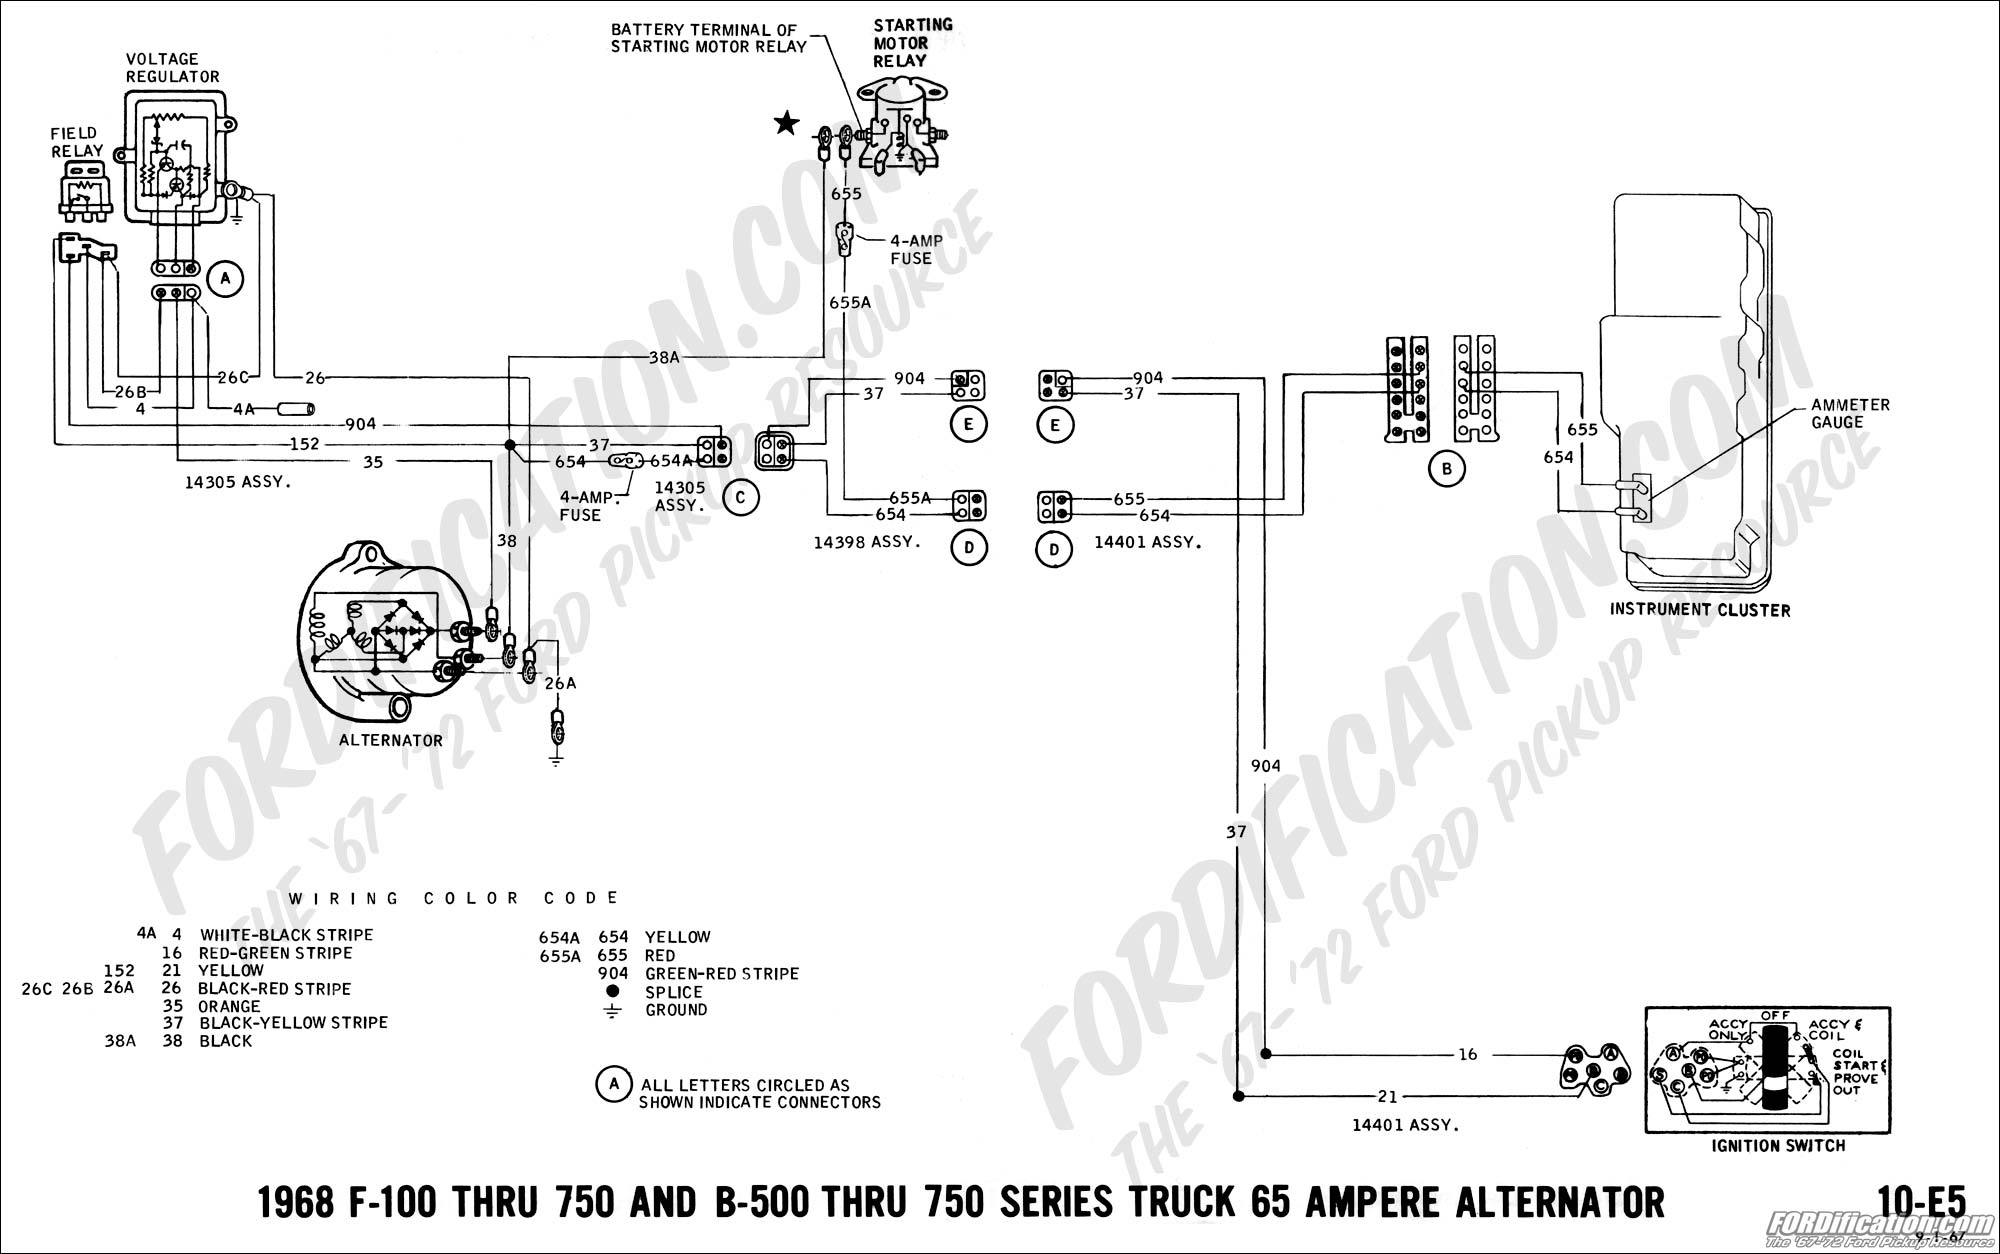 Willys Jeep Mb Wiring Diagram. Jeep. Auto Wiring Diagram